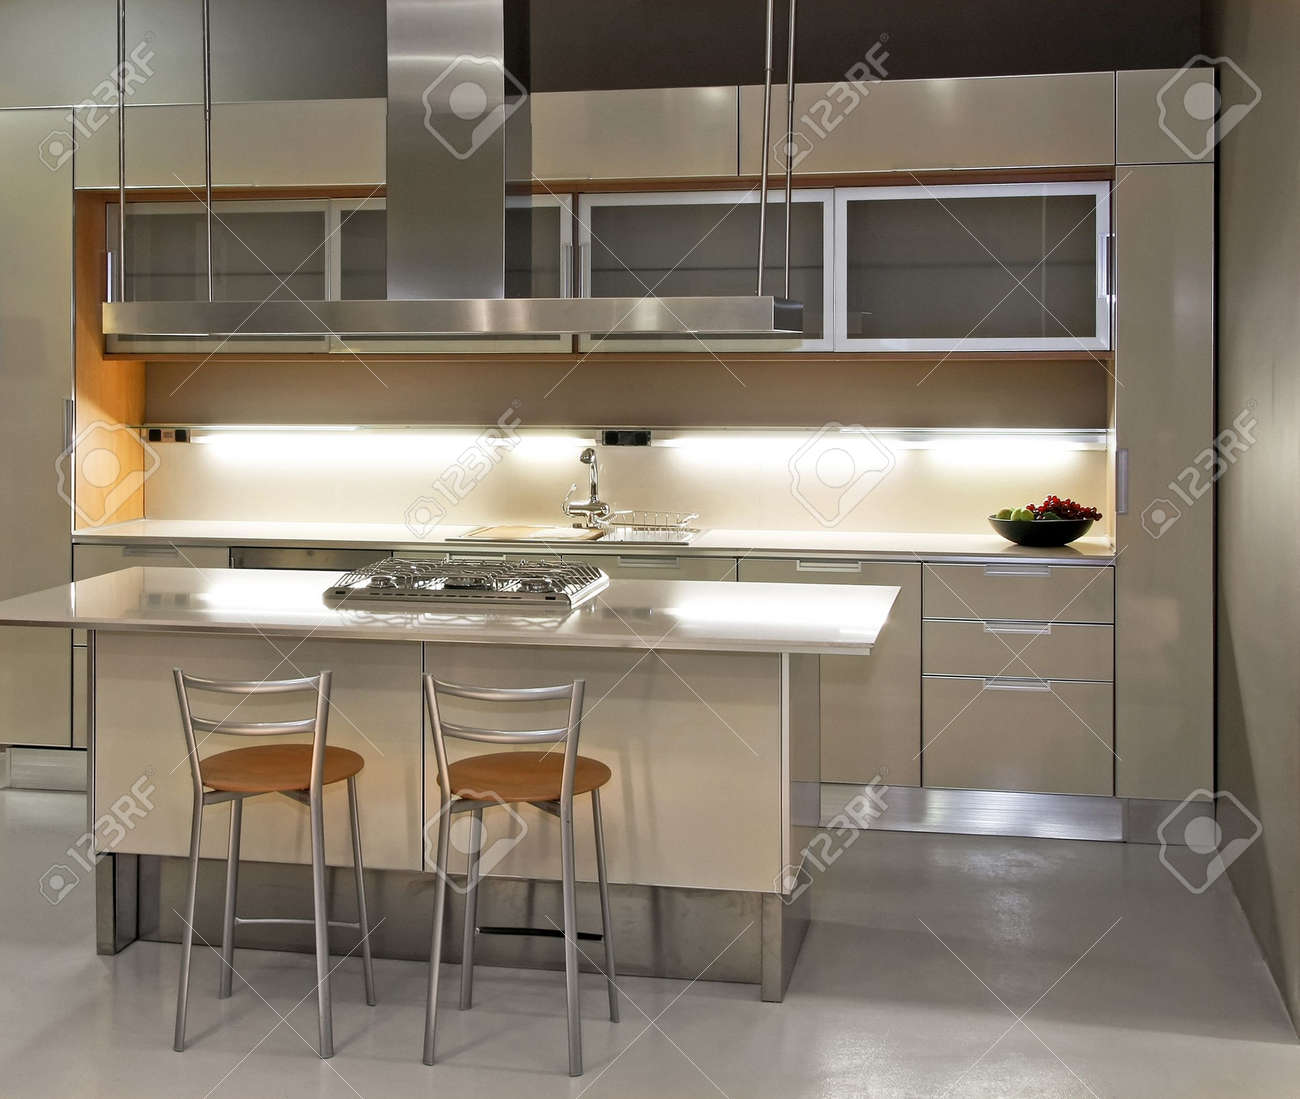 New light kitchen with counter and chairs Stock Photo - 2512697